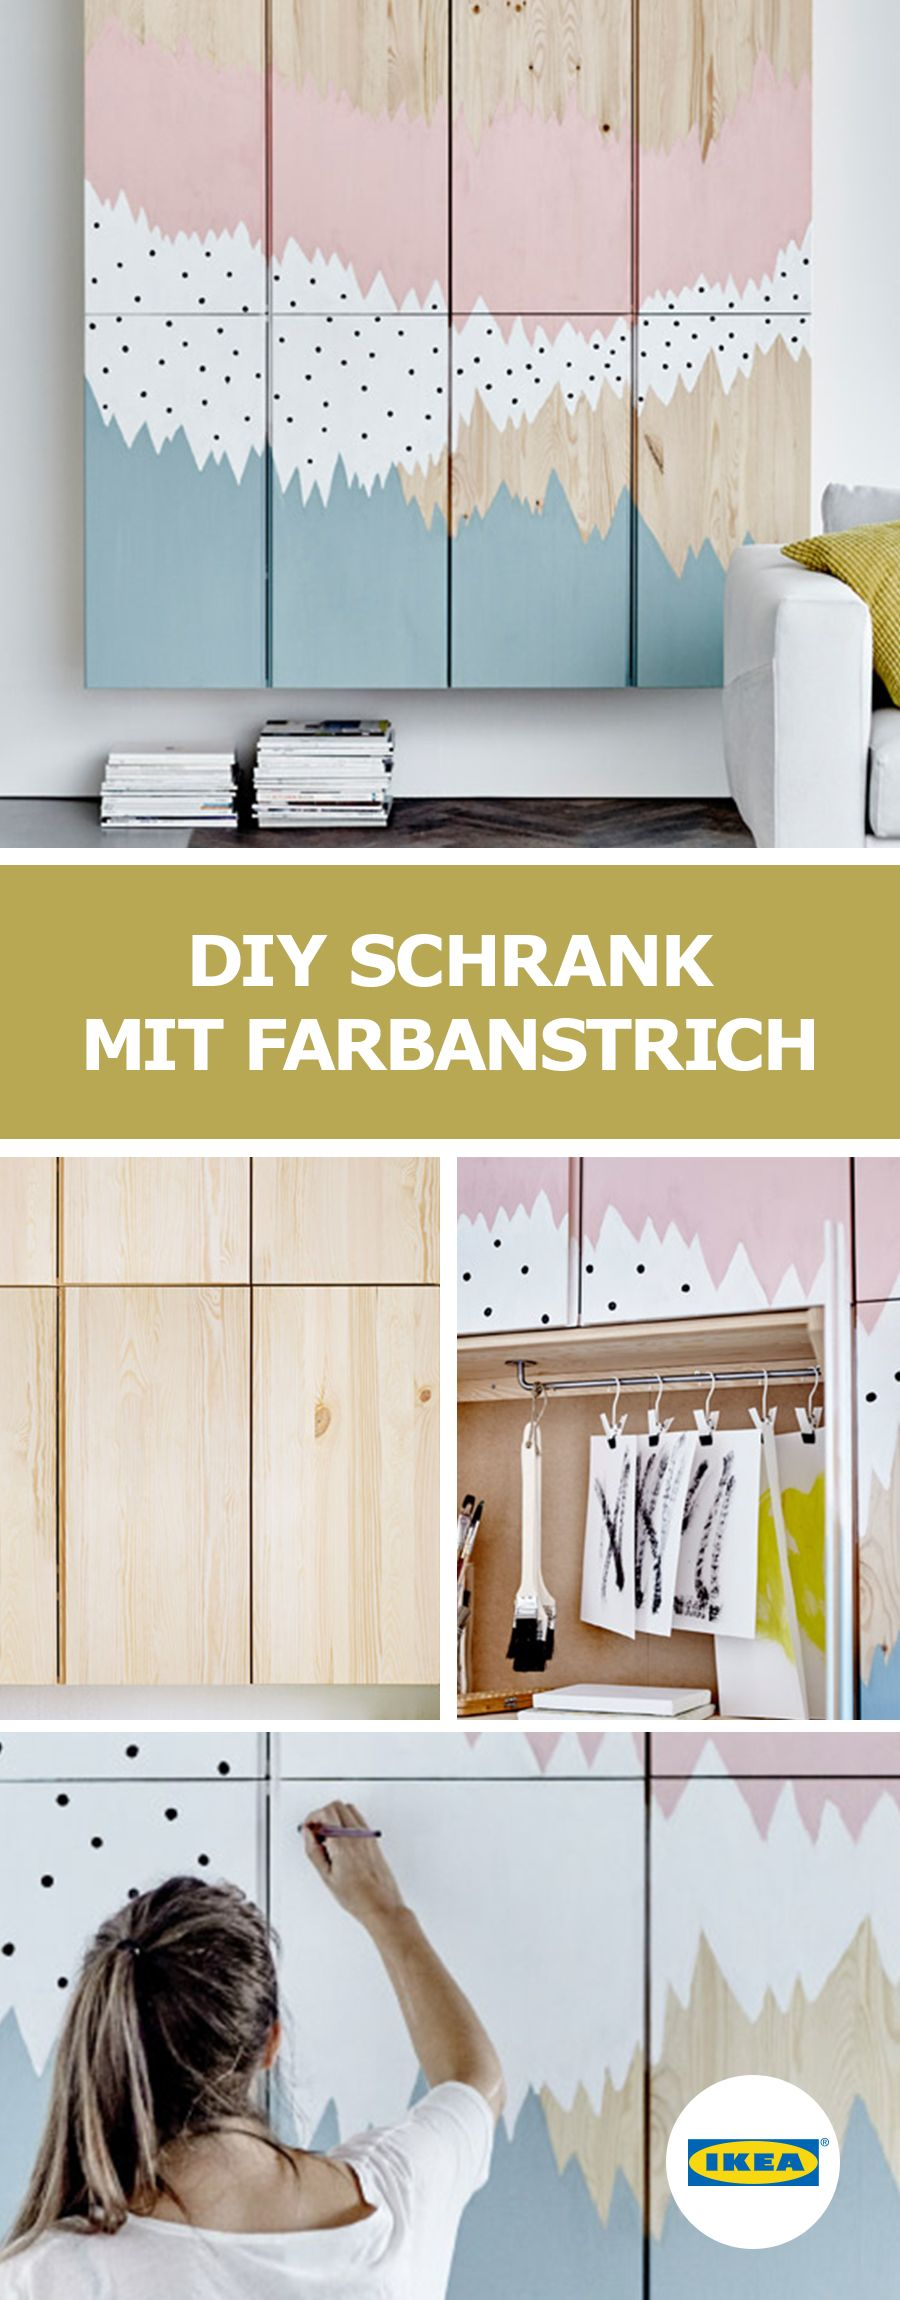 ikea deutschland diy schrank mit farbanstrich diy. Black Bedroom Furniture Sets. Home Design Ideas